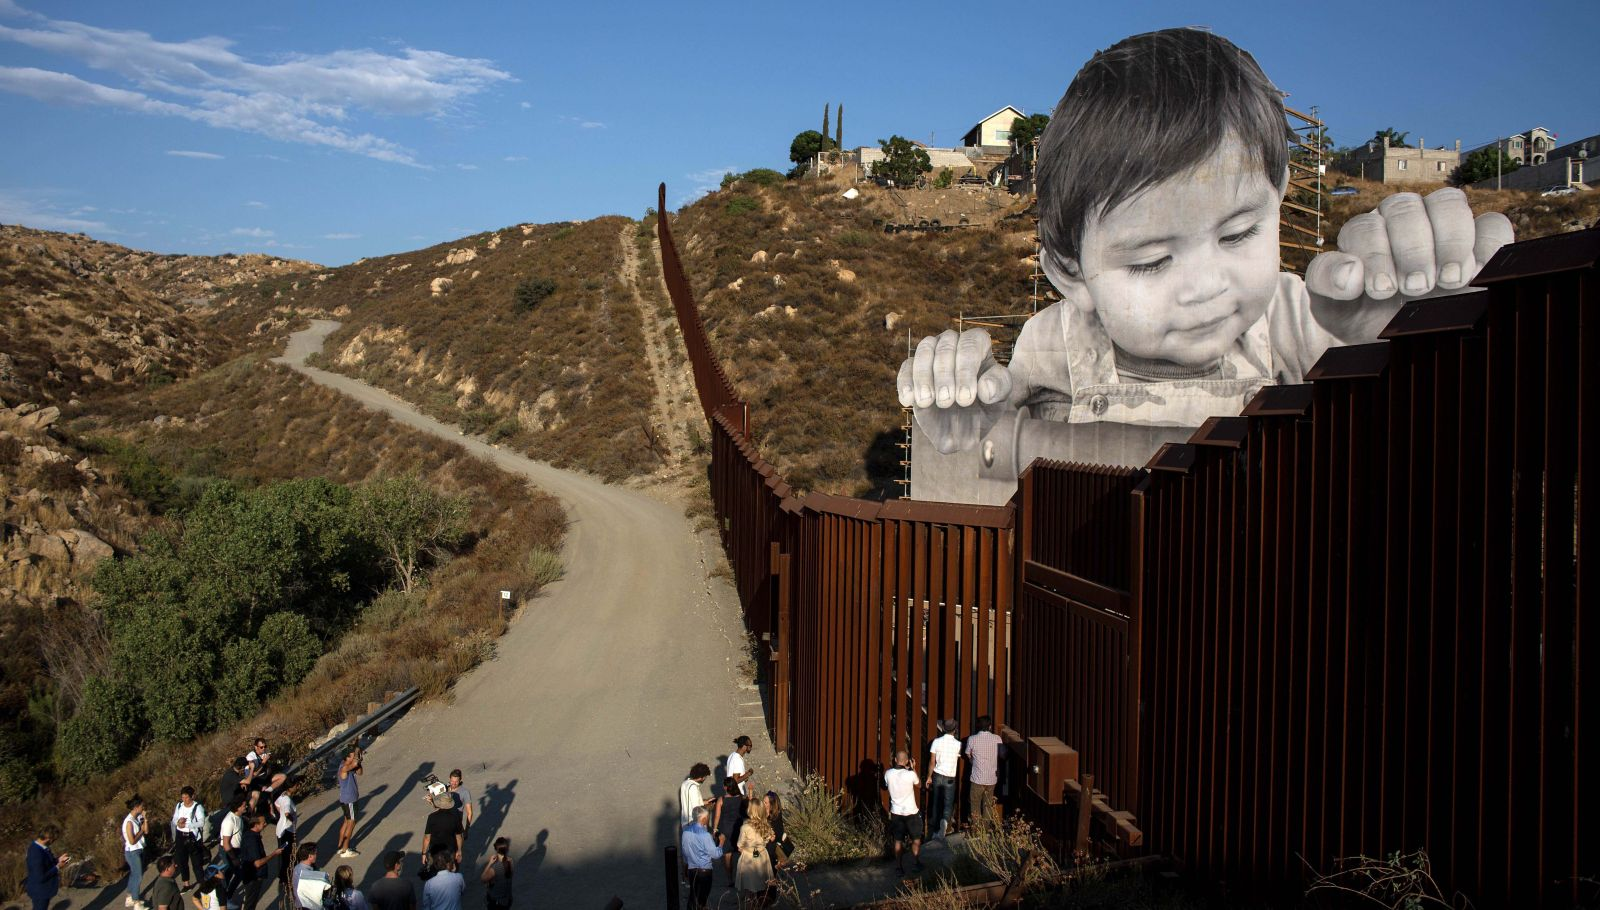 Jr At The Border The Artist S Newest Work At Us Mexico